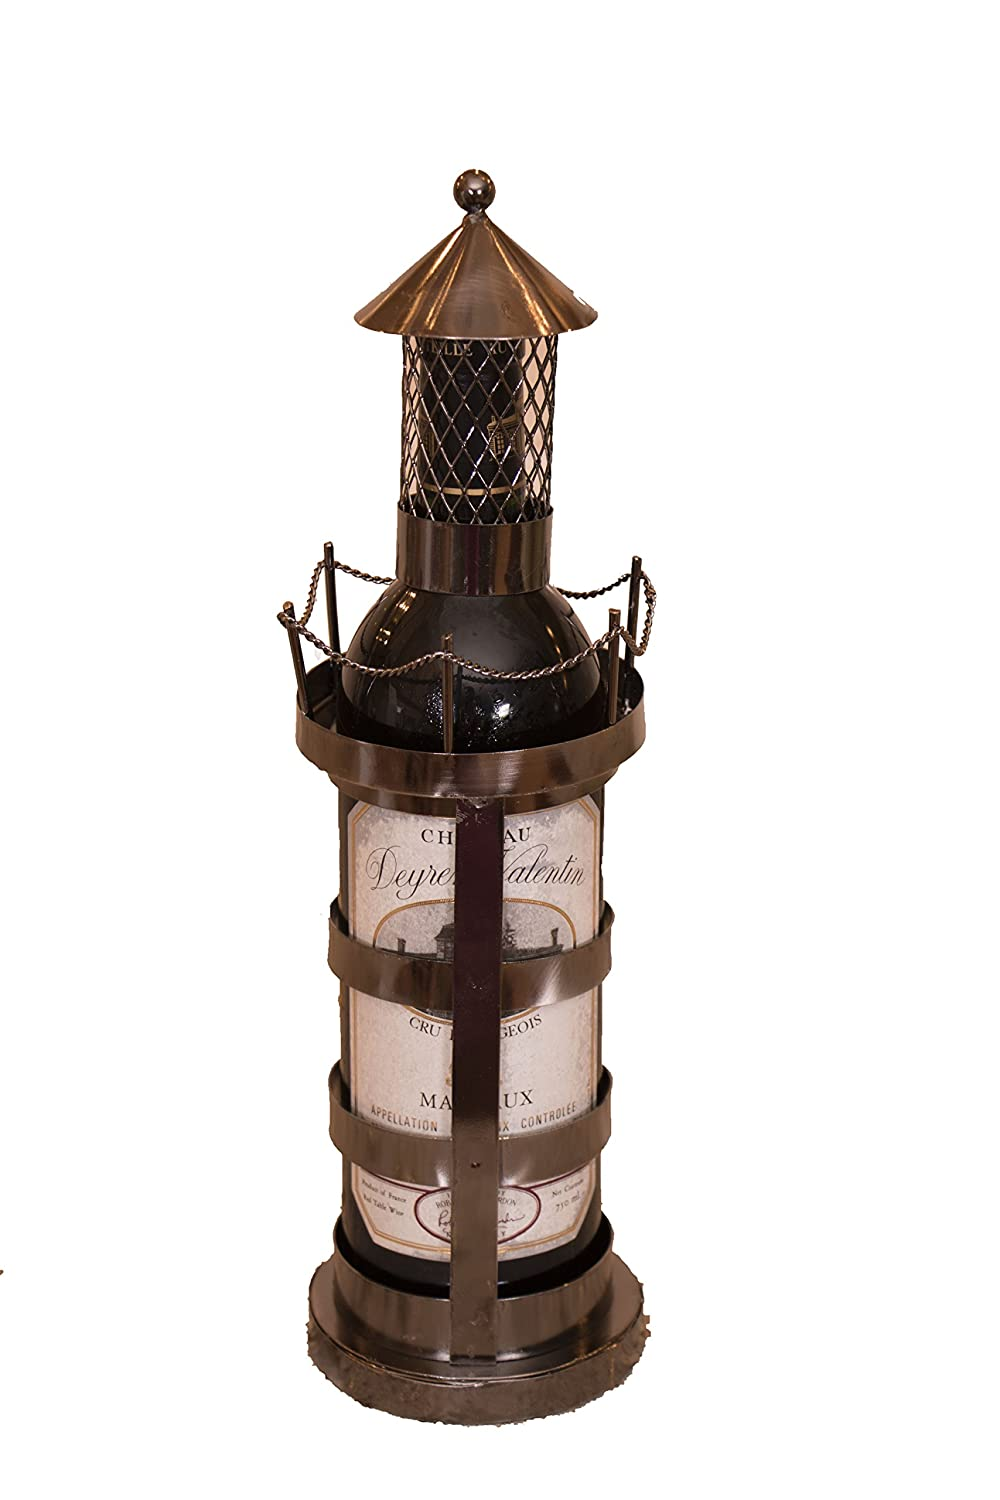 Lighthouse Wine Bottle Holder by Clever Creations | Premium Metal Design Easily Fits Any Standard Bottle | Decorative Design | Great Gift for Your Favorite Wine | Wide Stable Base